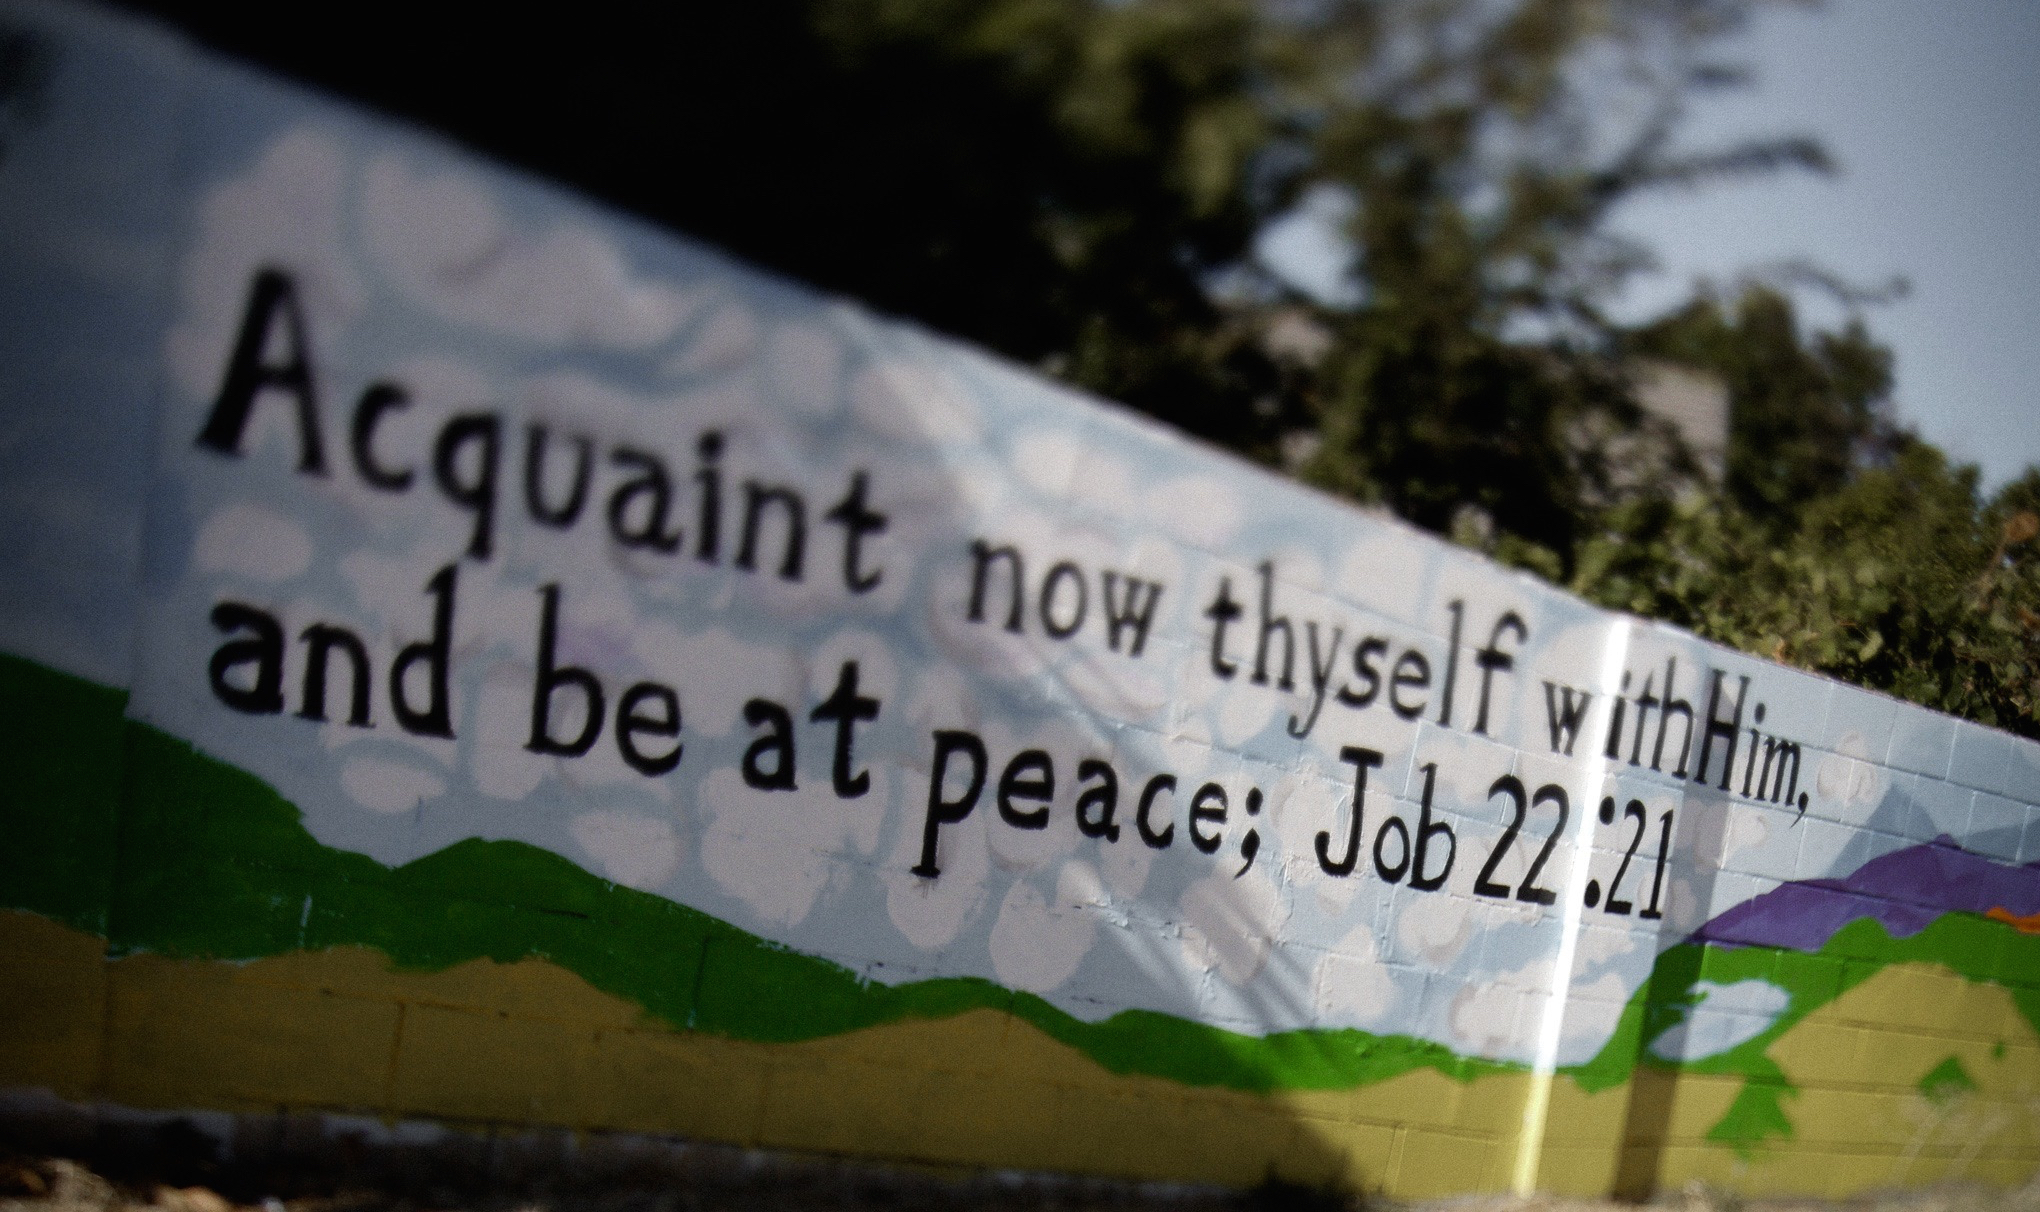 Job 22:11 says, Aquaint now thyself with Him; and be at peace. Photo ©2013 James Eslabon.